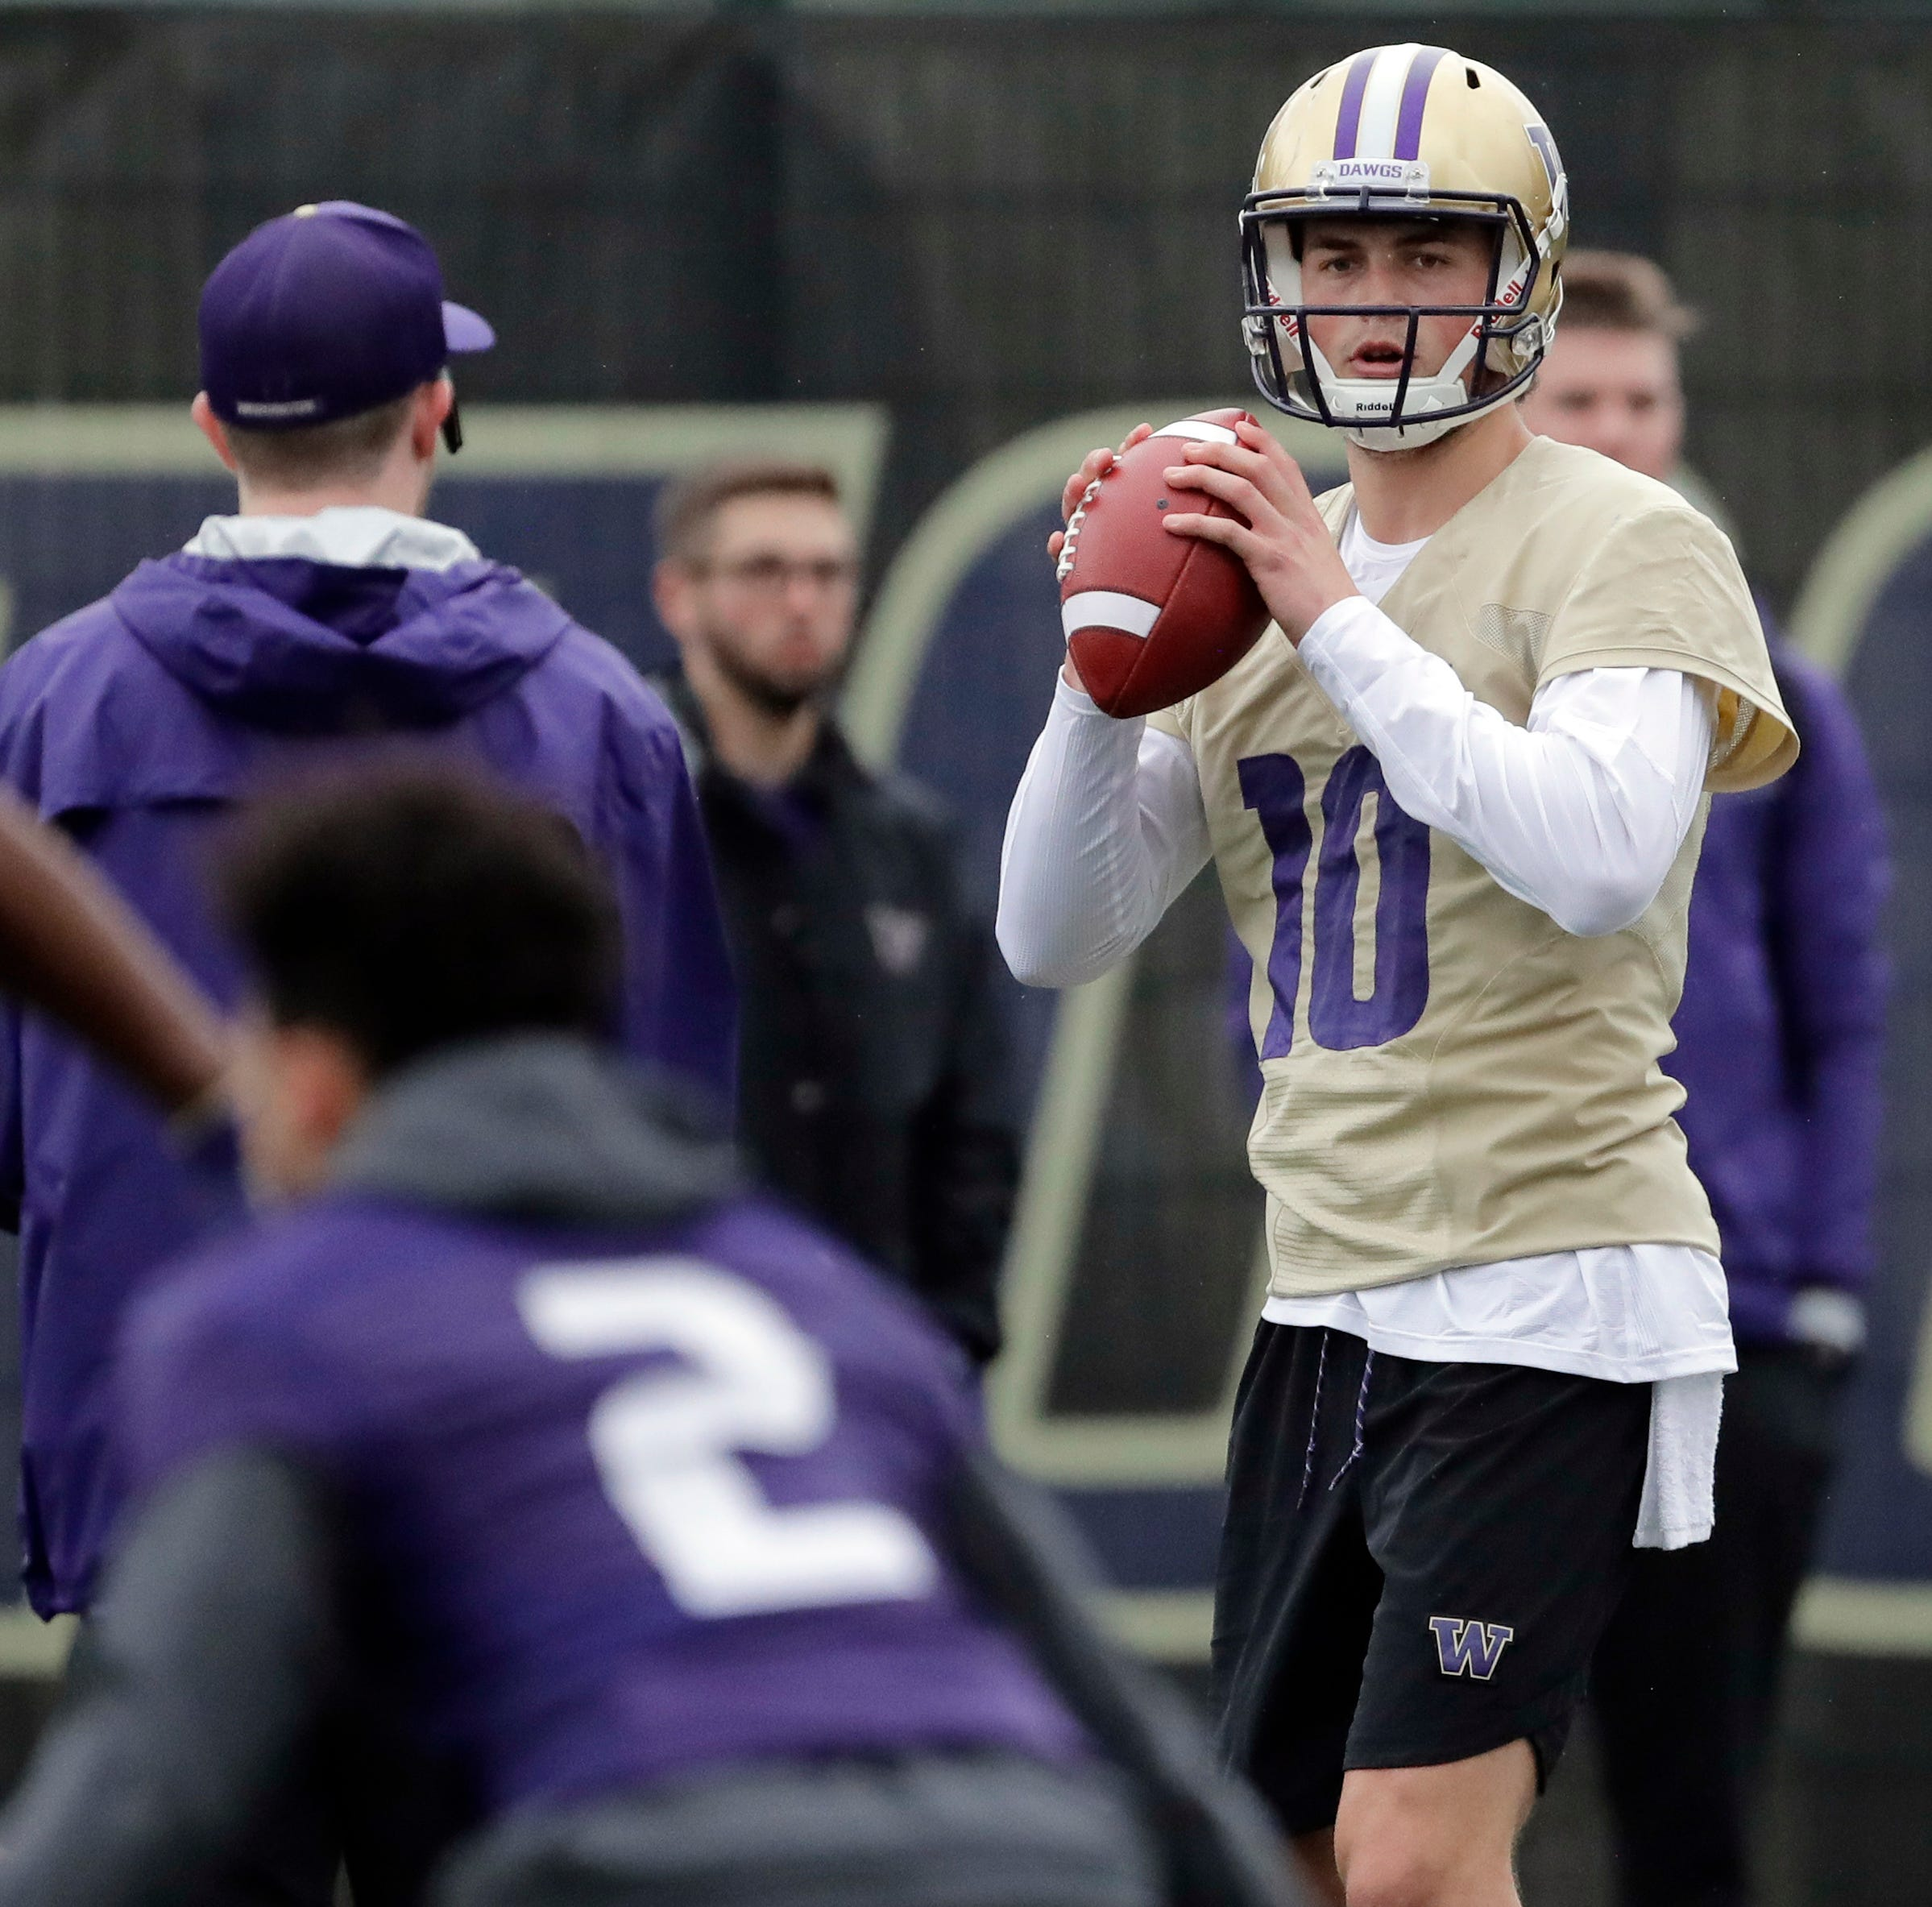 After sitting out, Jacob Eason in mix for Washington QB job